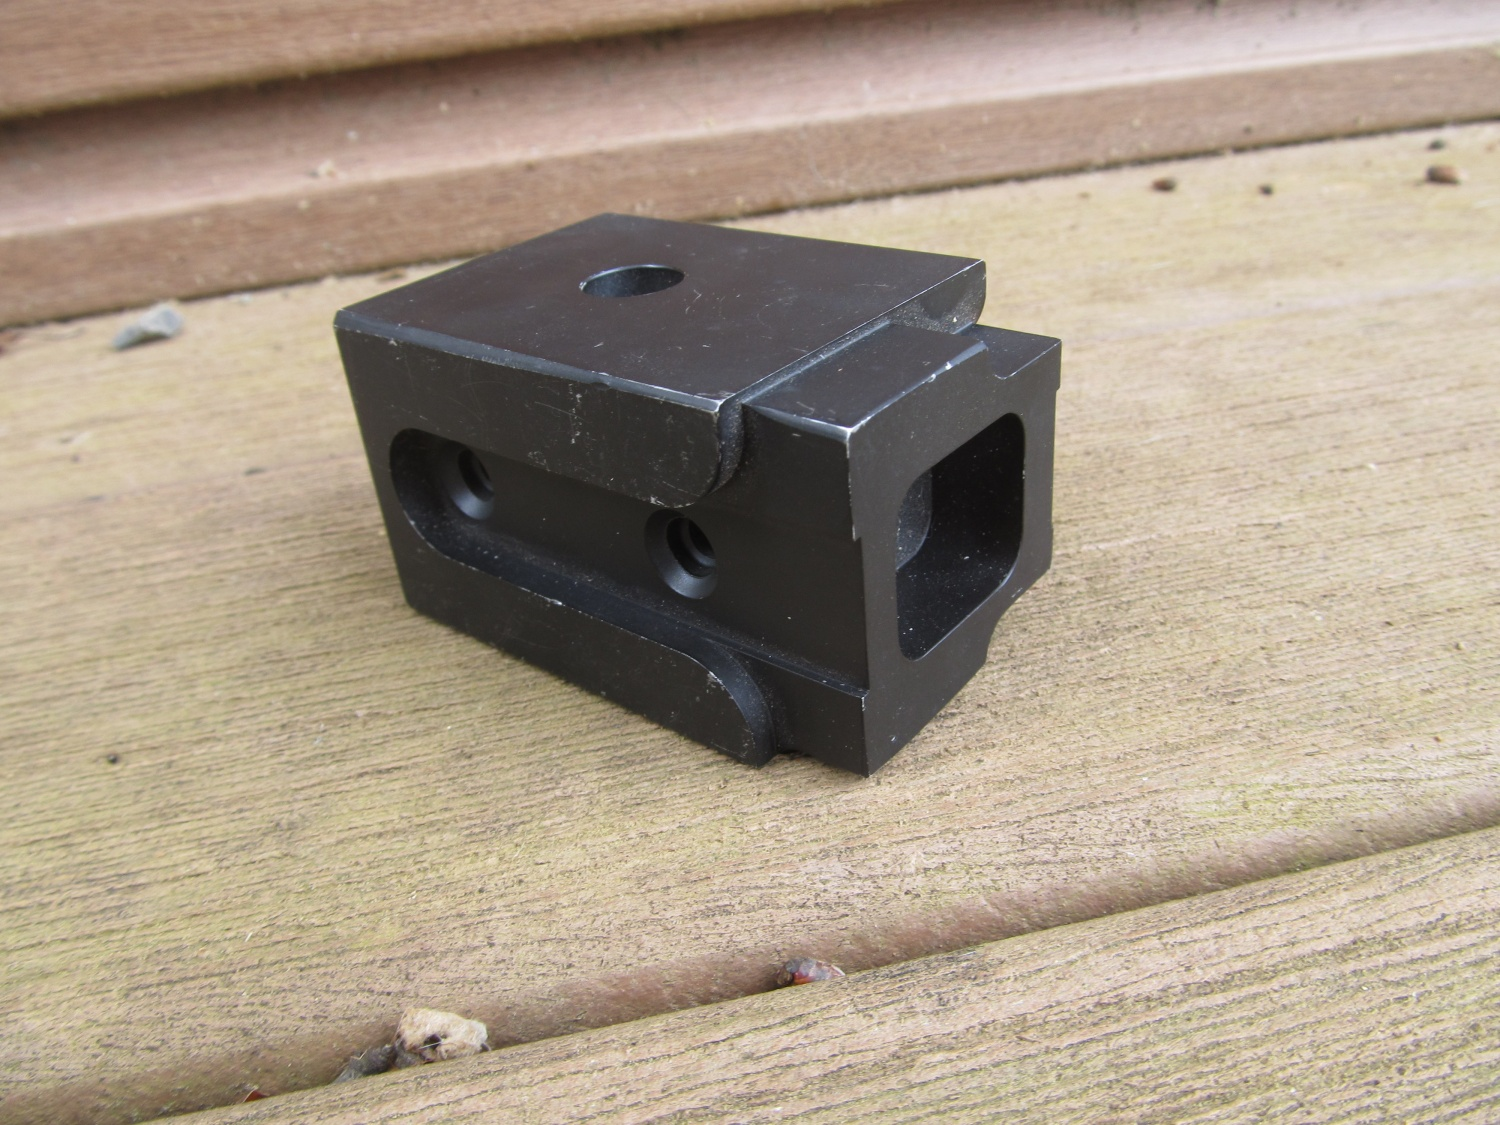 PKM folding stock block adaptor that the company makes.